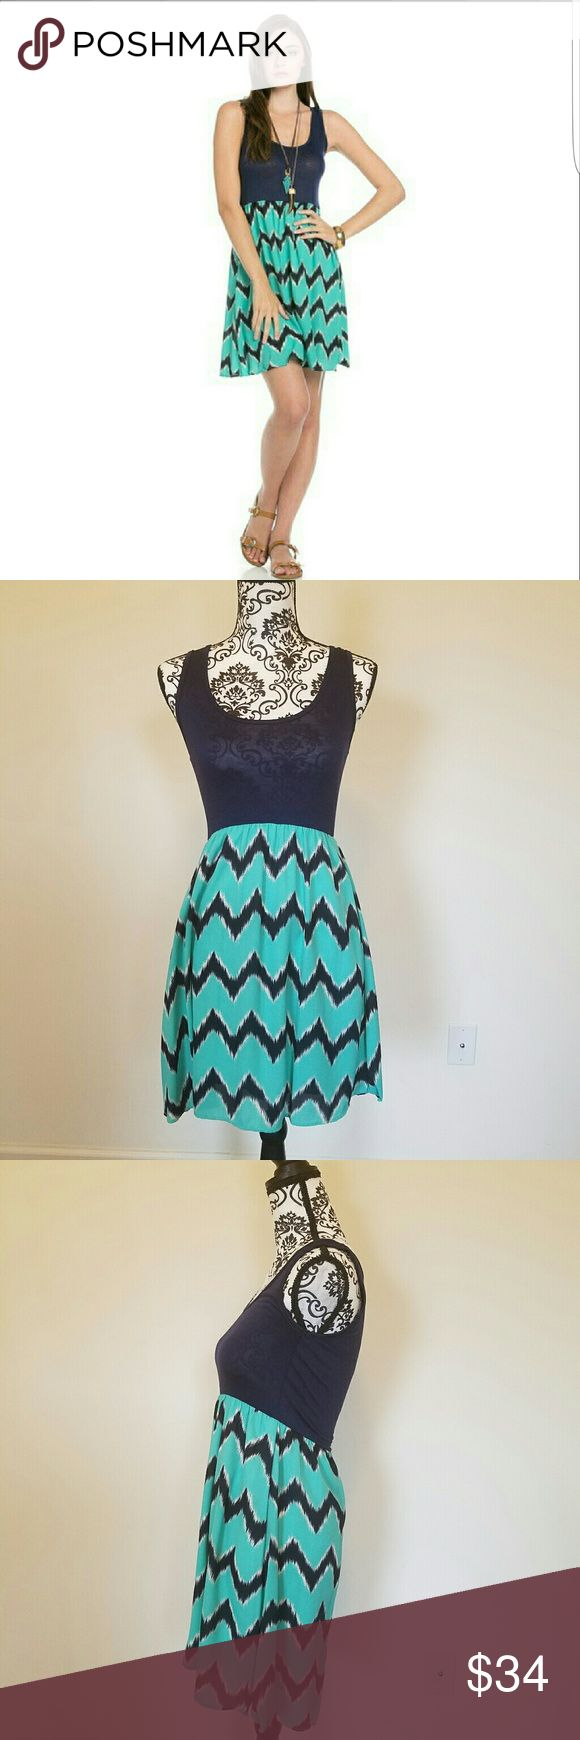 Sleeveless Navy and Mint Chevron Dress Sleeveless solid top contrast Chevron dress  Material: 100% Polyster Blossom_pm Dresses